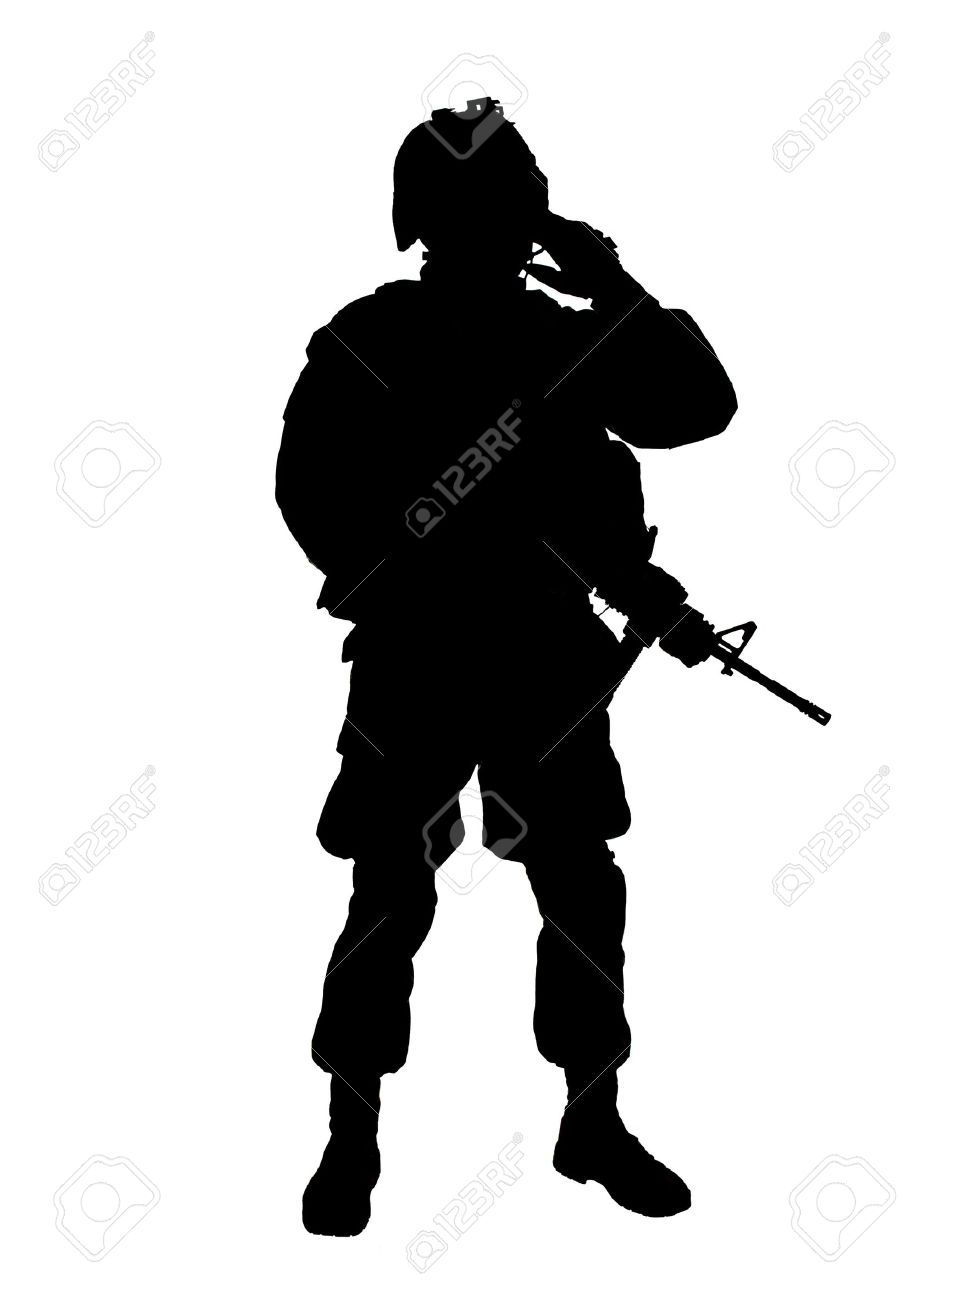 Us Army Ranger Clipart.